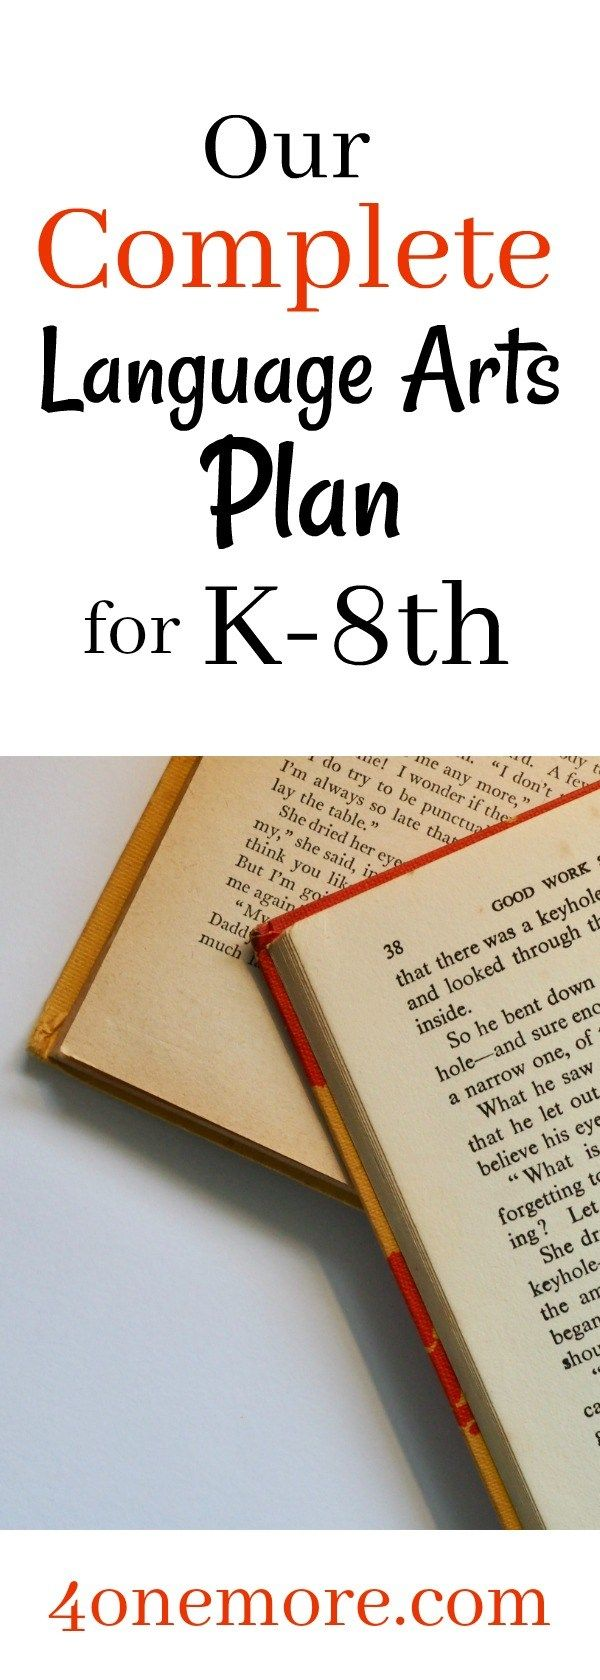 Our Complete Language Arts Plan For K 8th Elementary Education